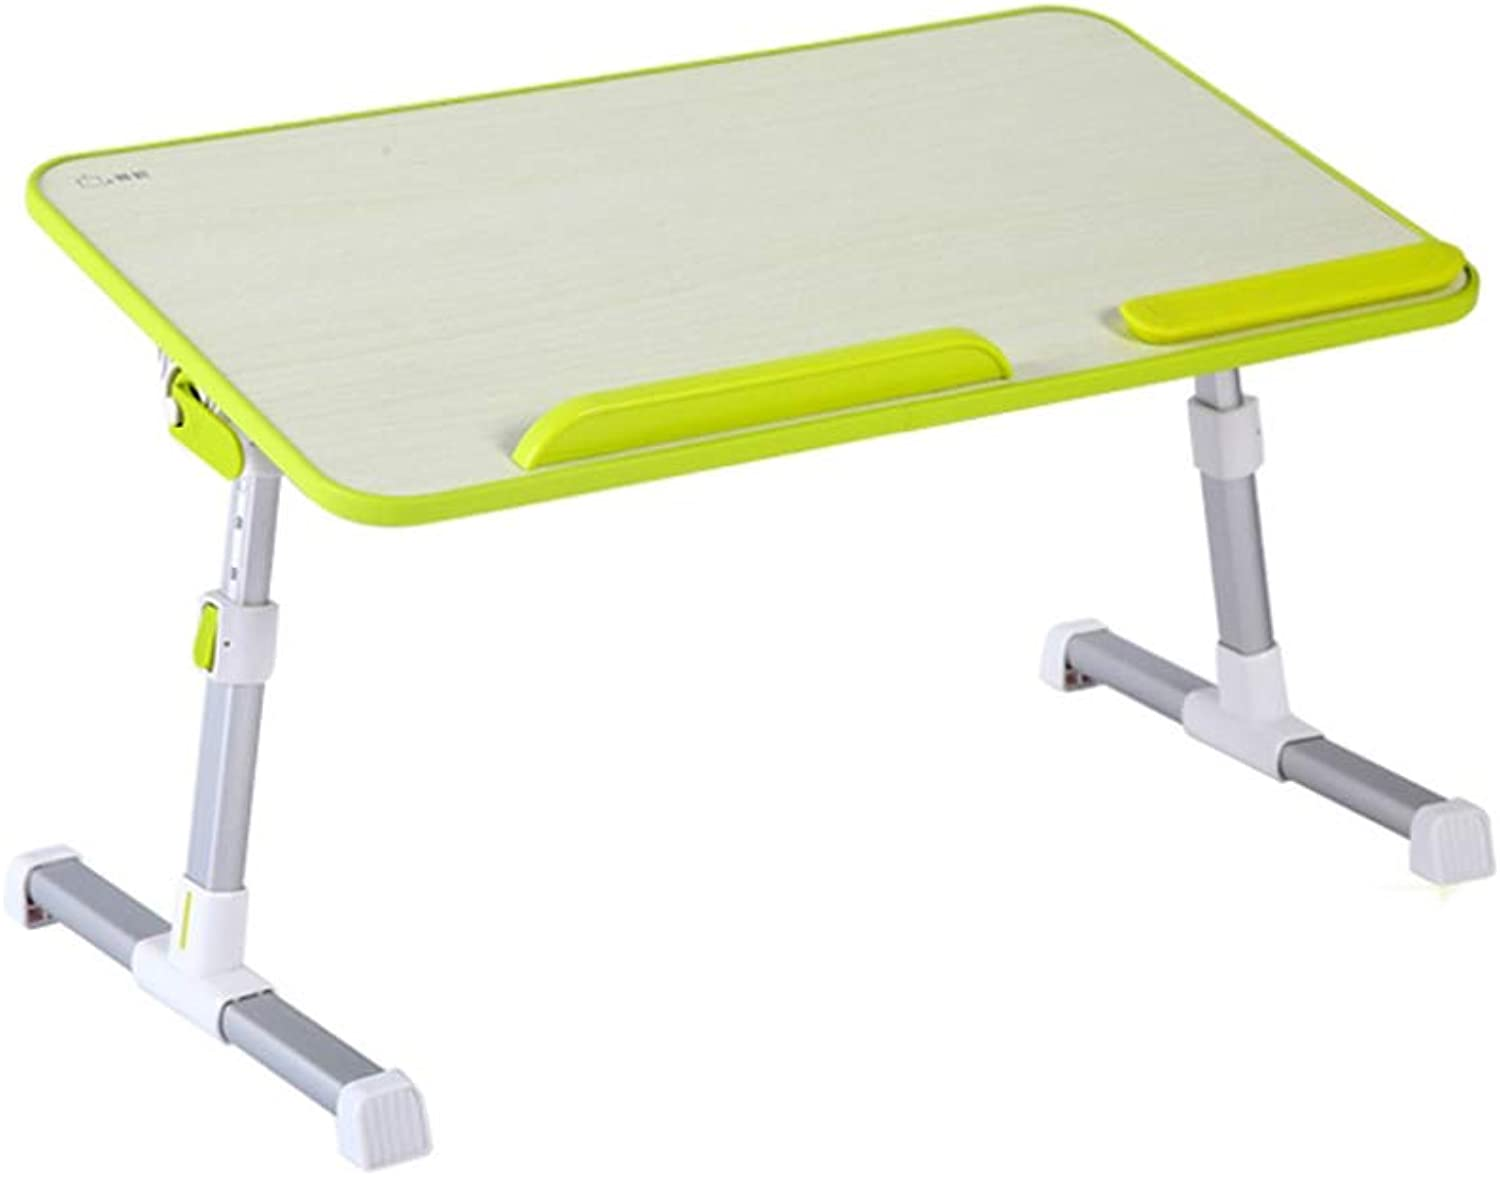 ZHPRZD Bed Desk, Foldable 36-Degree redating Small Table, Lazy Table, Learning Computer Desk 60cmx33cm